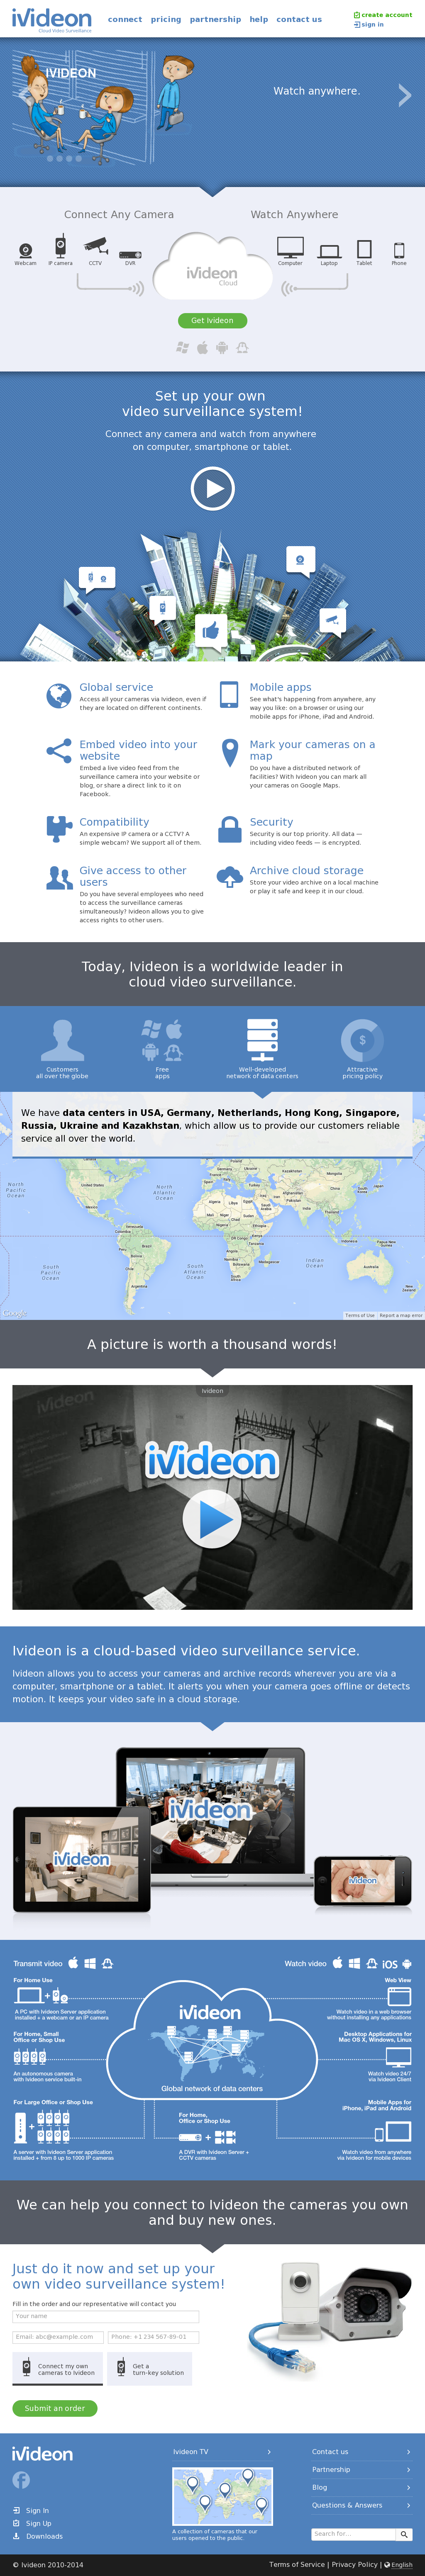 Ivideon Competitors, Revenue and Employees - Owler Company